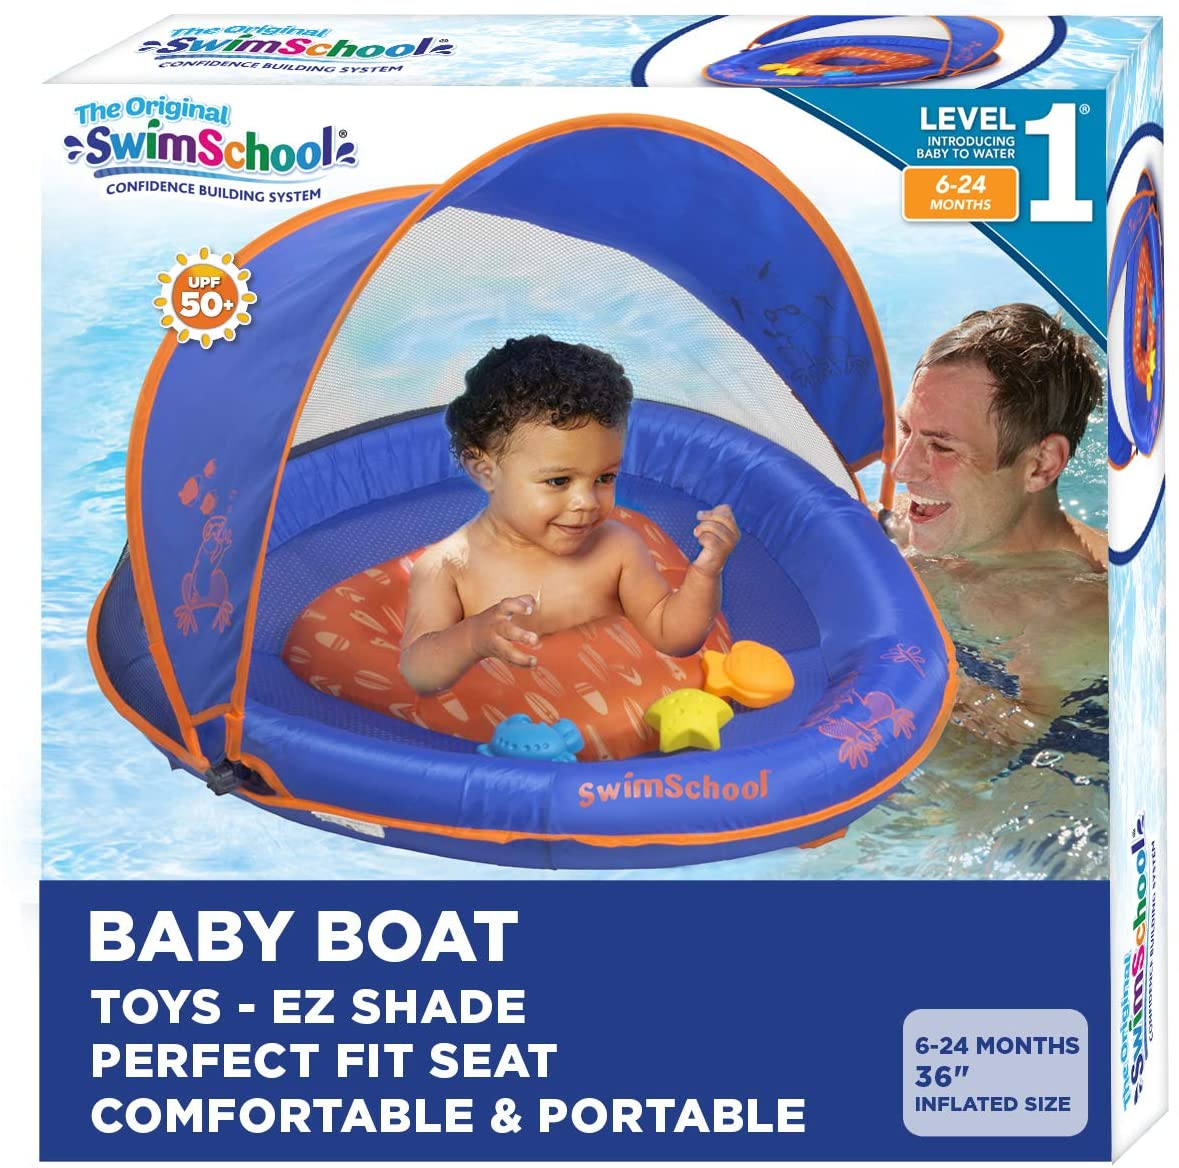 SwimSchool Infant Same day shipping Baby Pool Float Regular store To Splash Activity Play with